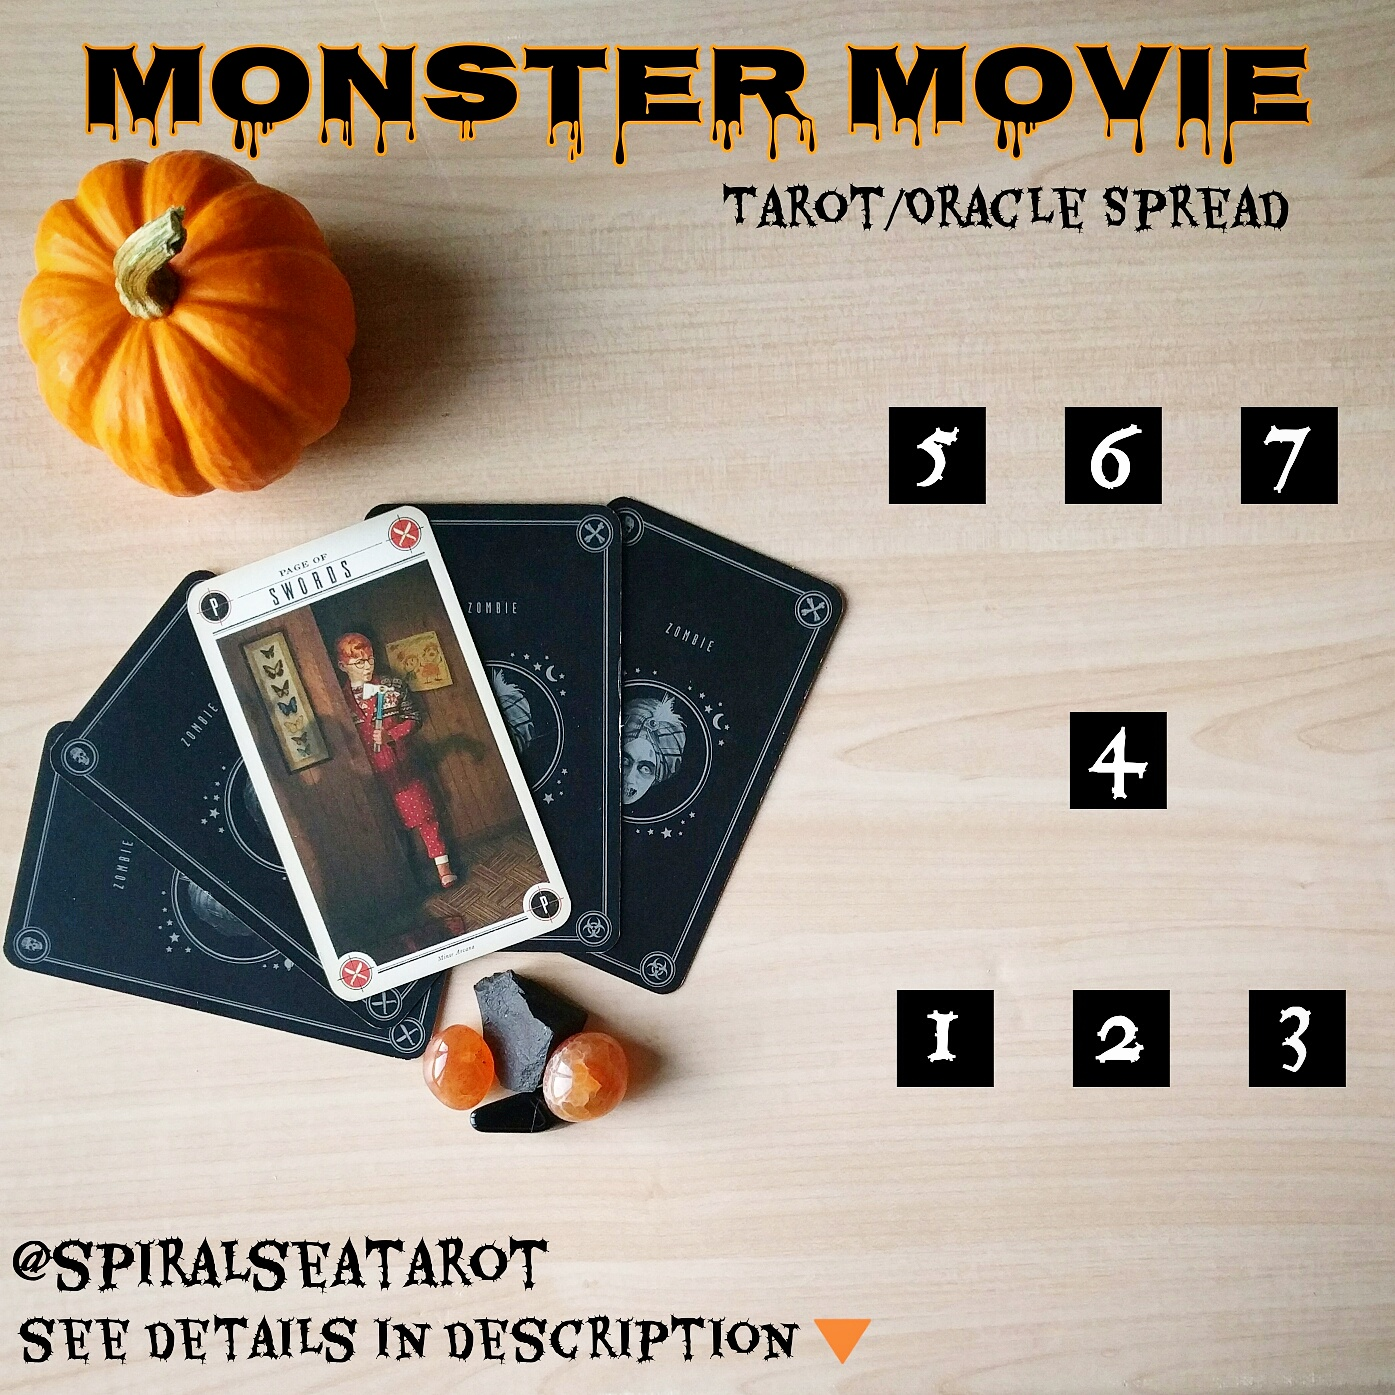 monstermoviehalloweentarotspread